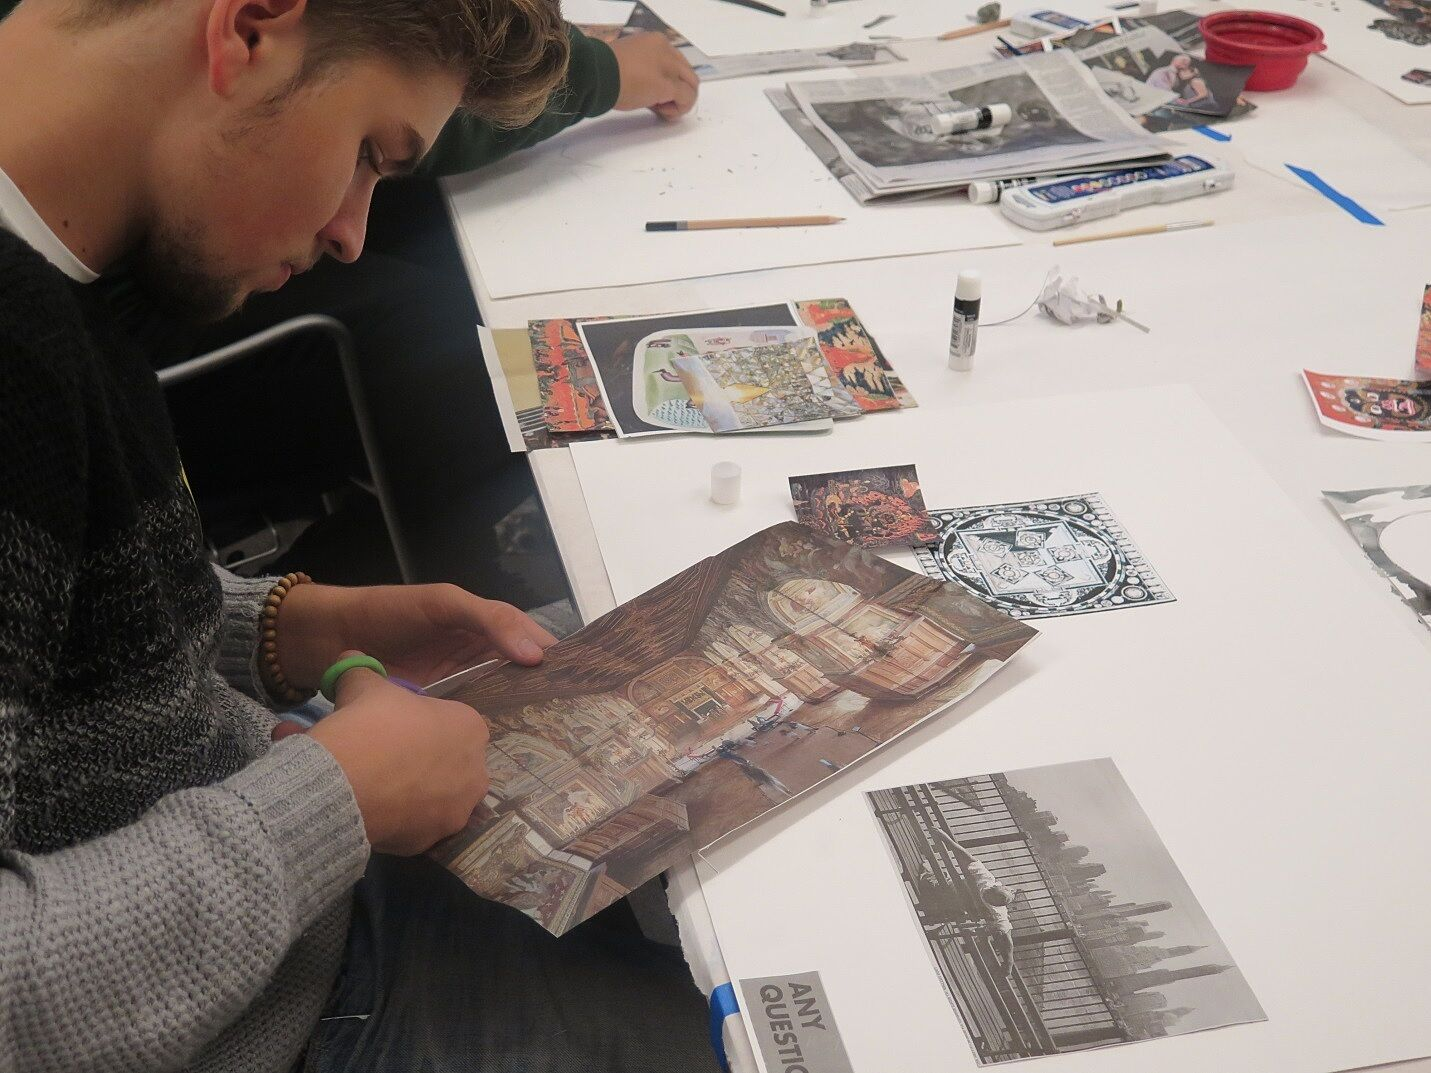 Teen working on a project